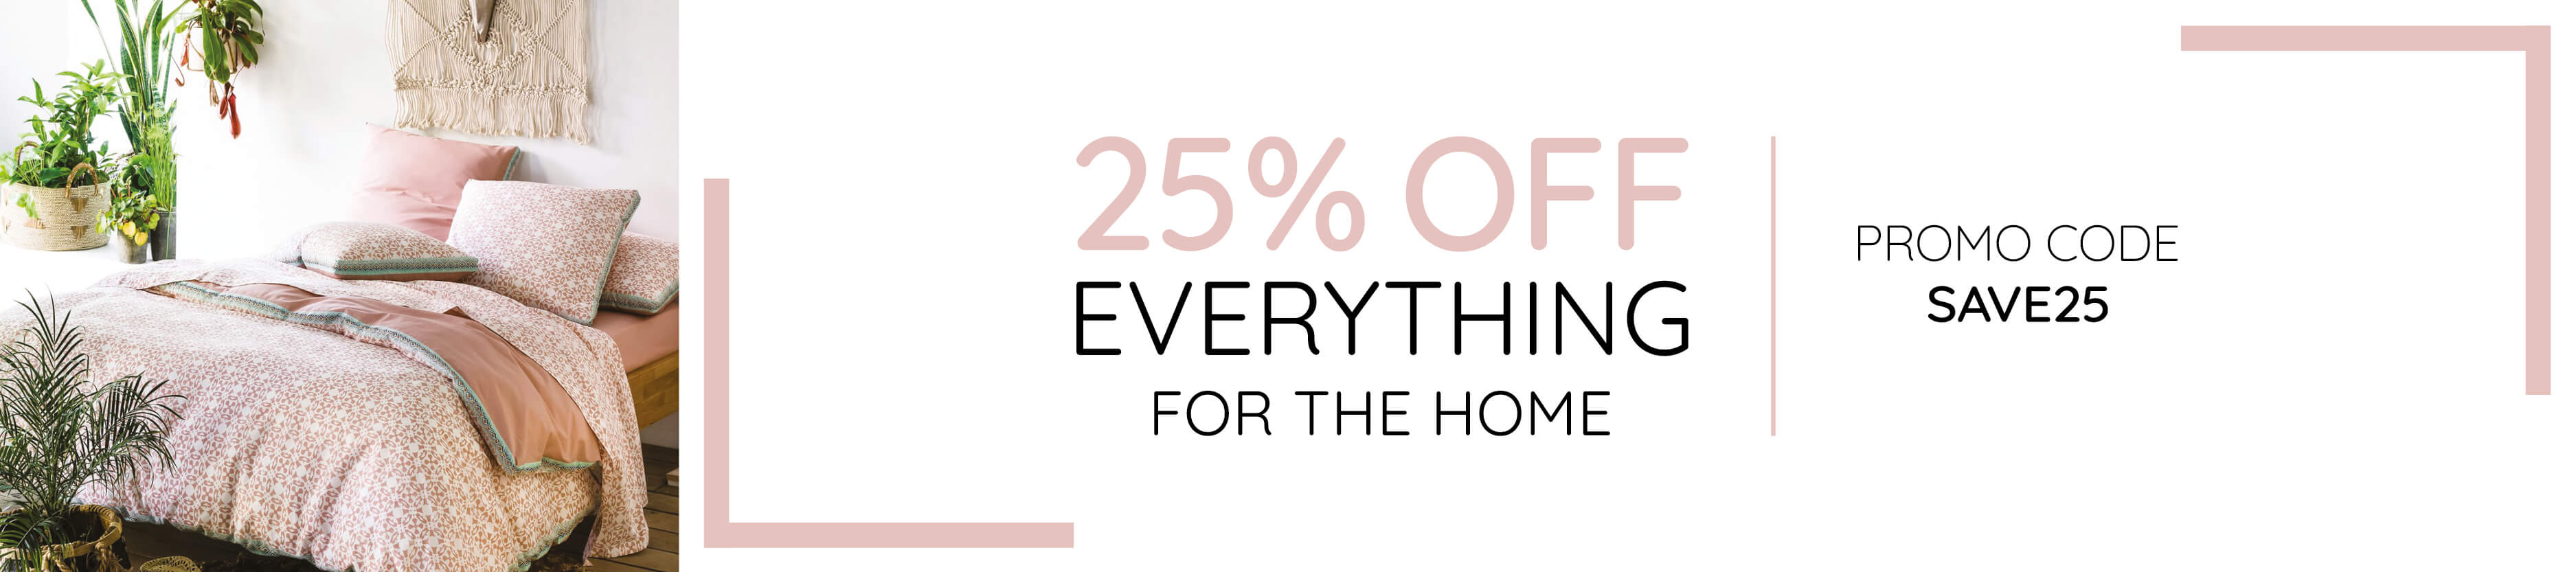 25% OFF Homeware